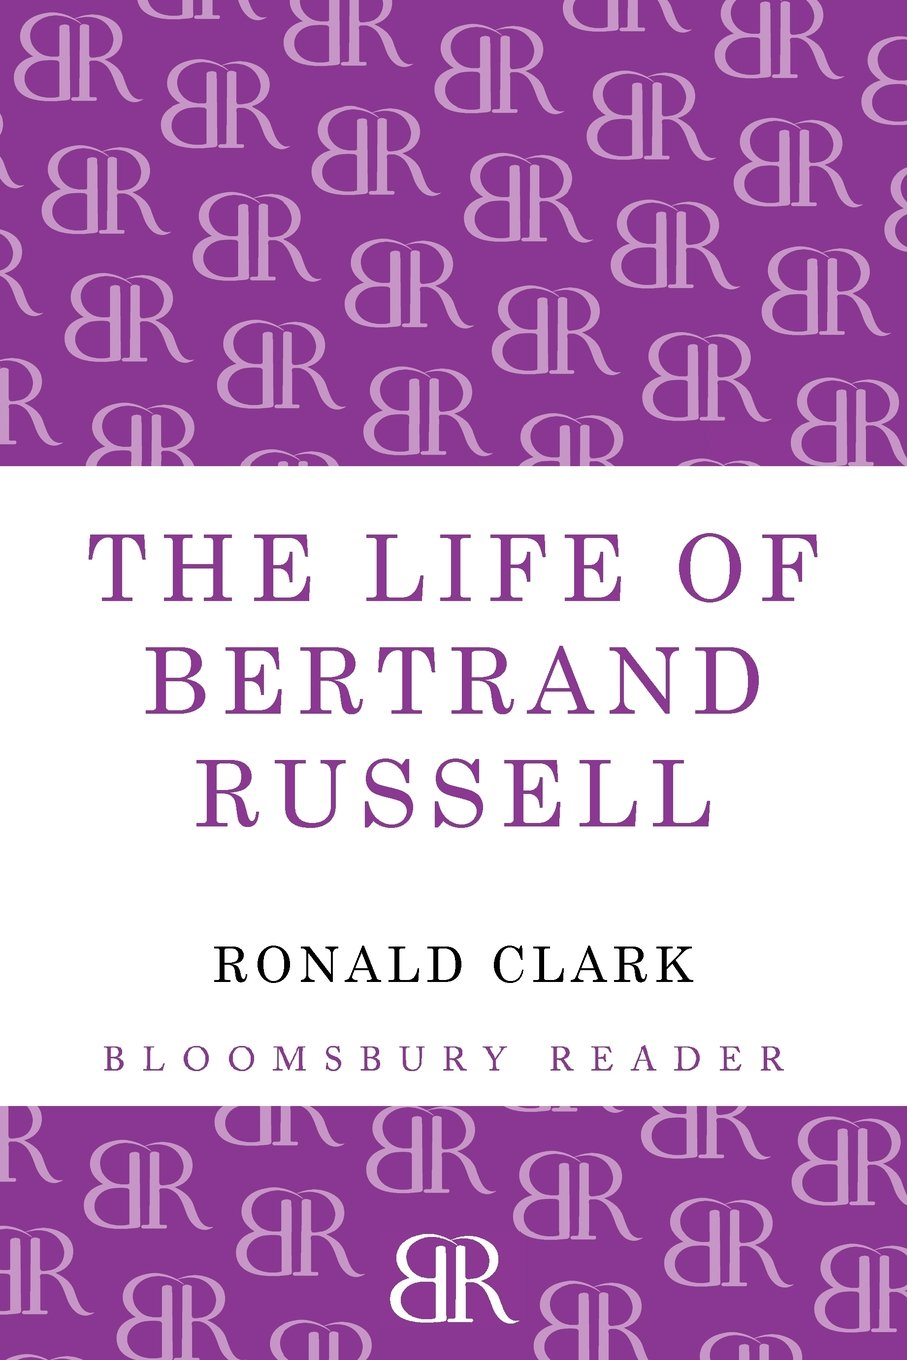 When Debate Is Futile: Bertrand Russell's Remarkable Response to a Fascist's Provocation